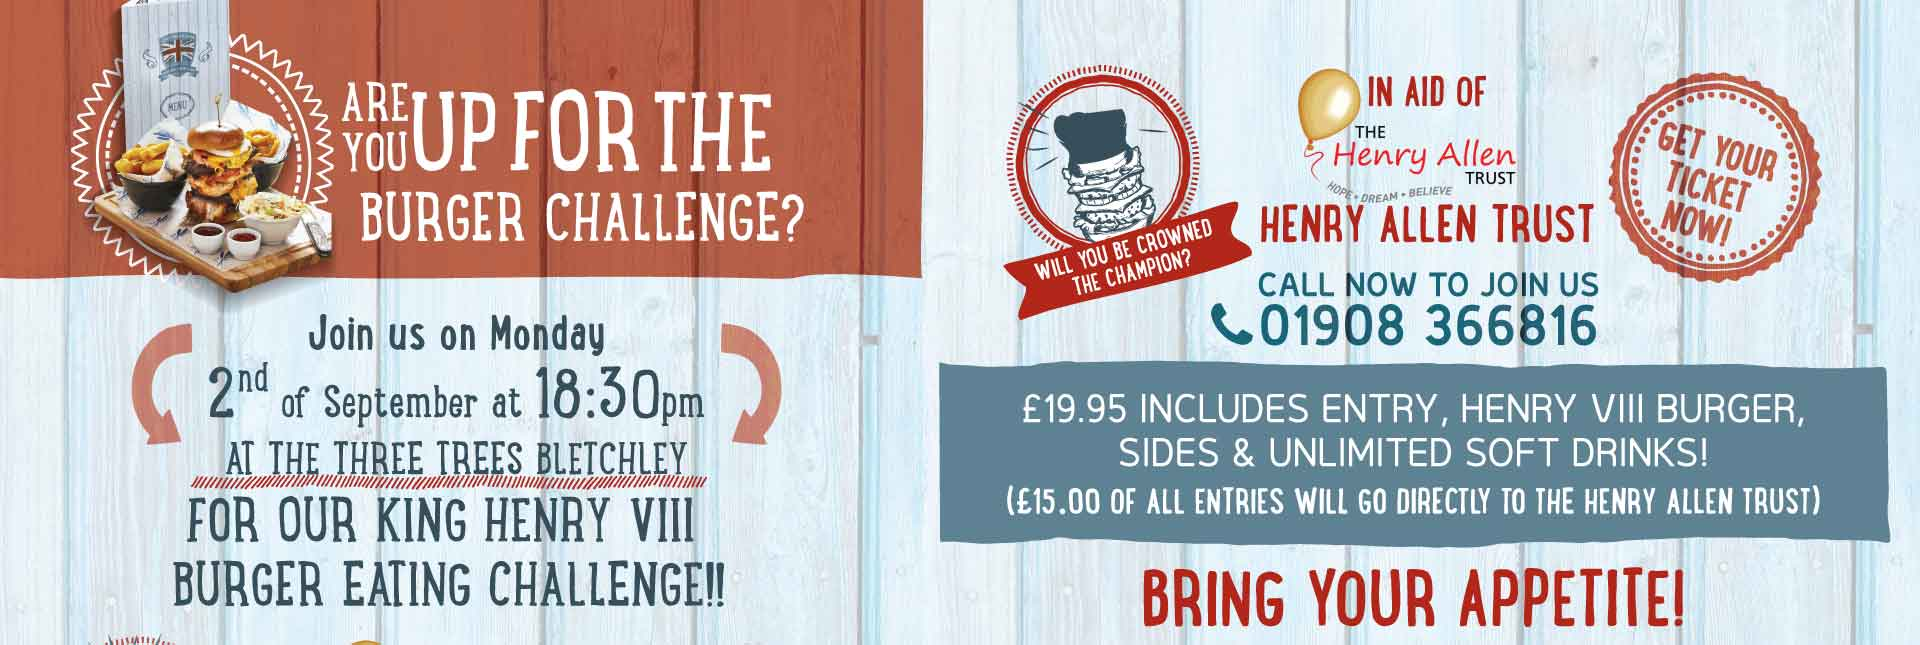 burger-challenge-2nd-sept-2019 at the Three Trees